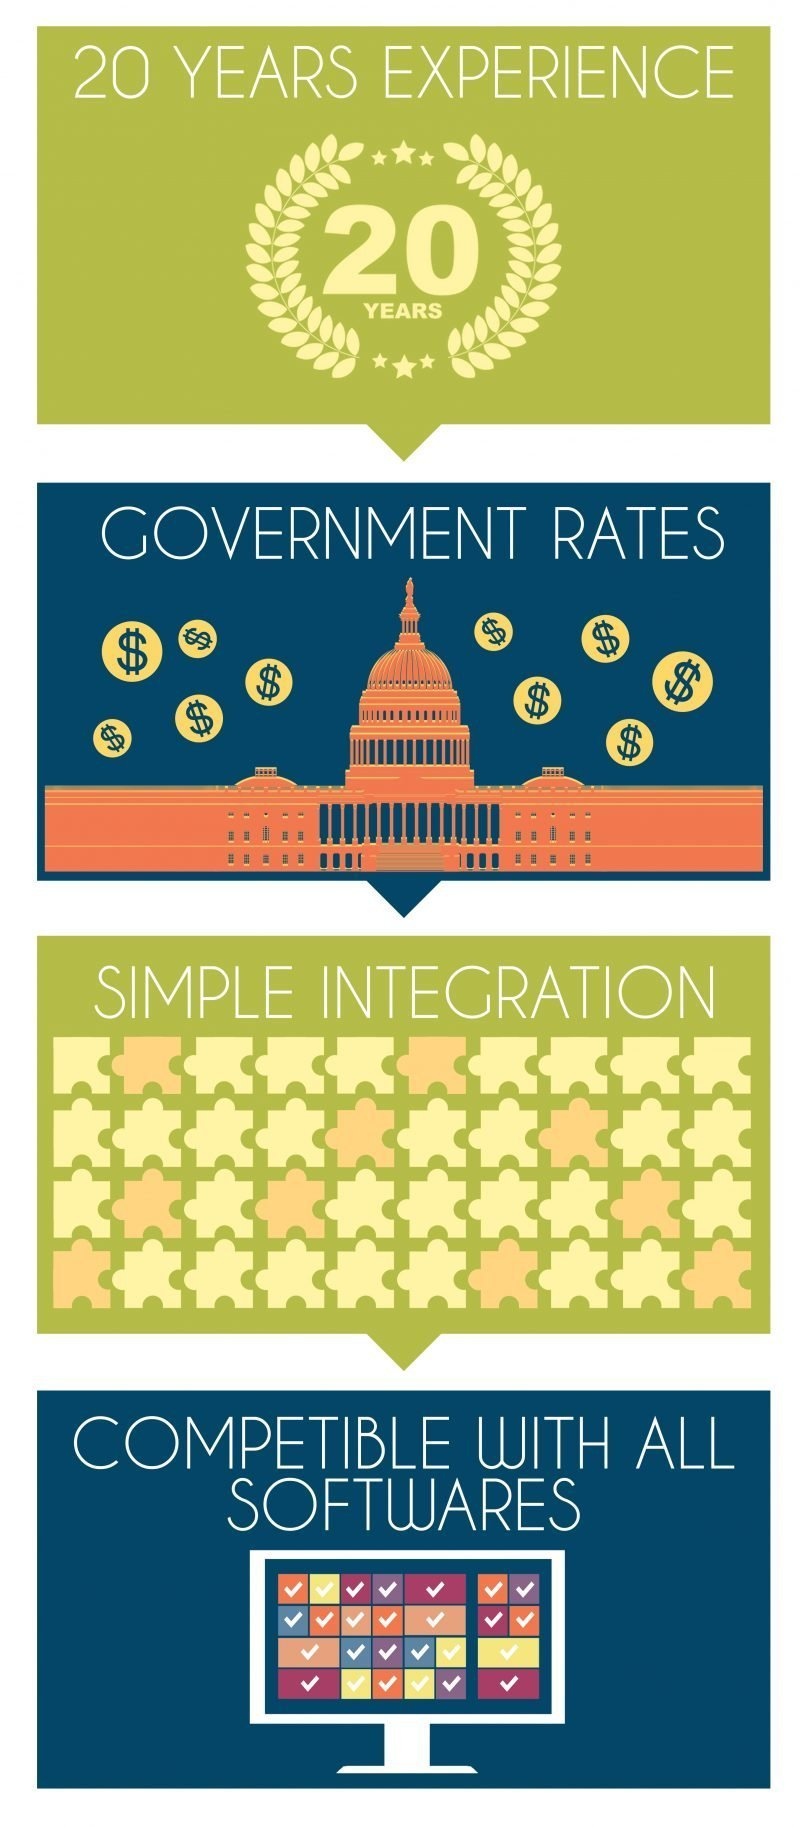 Credit card processing governement entities trust infographic